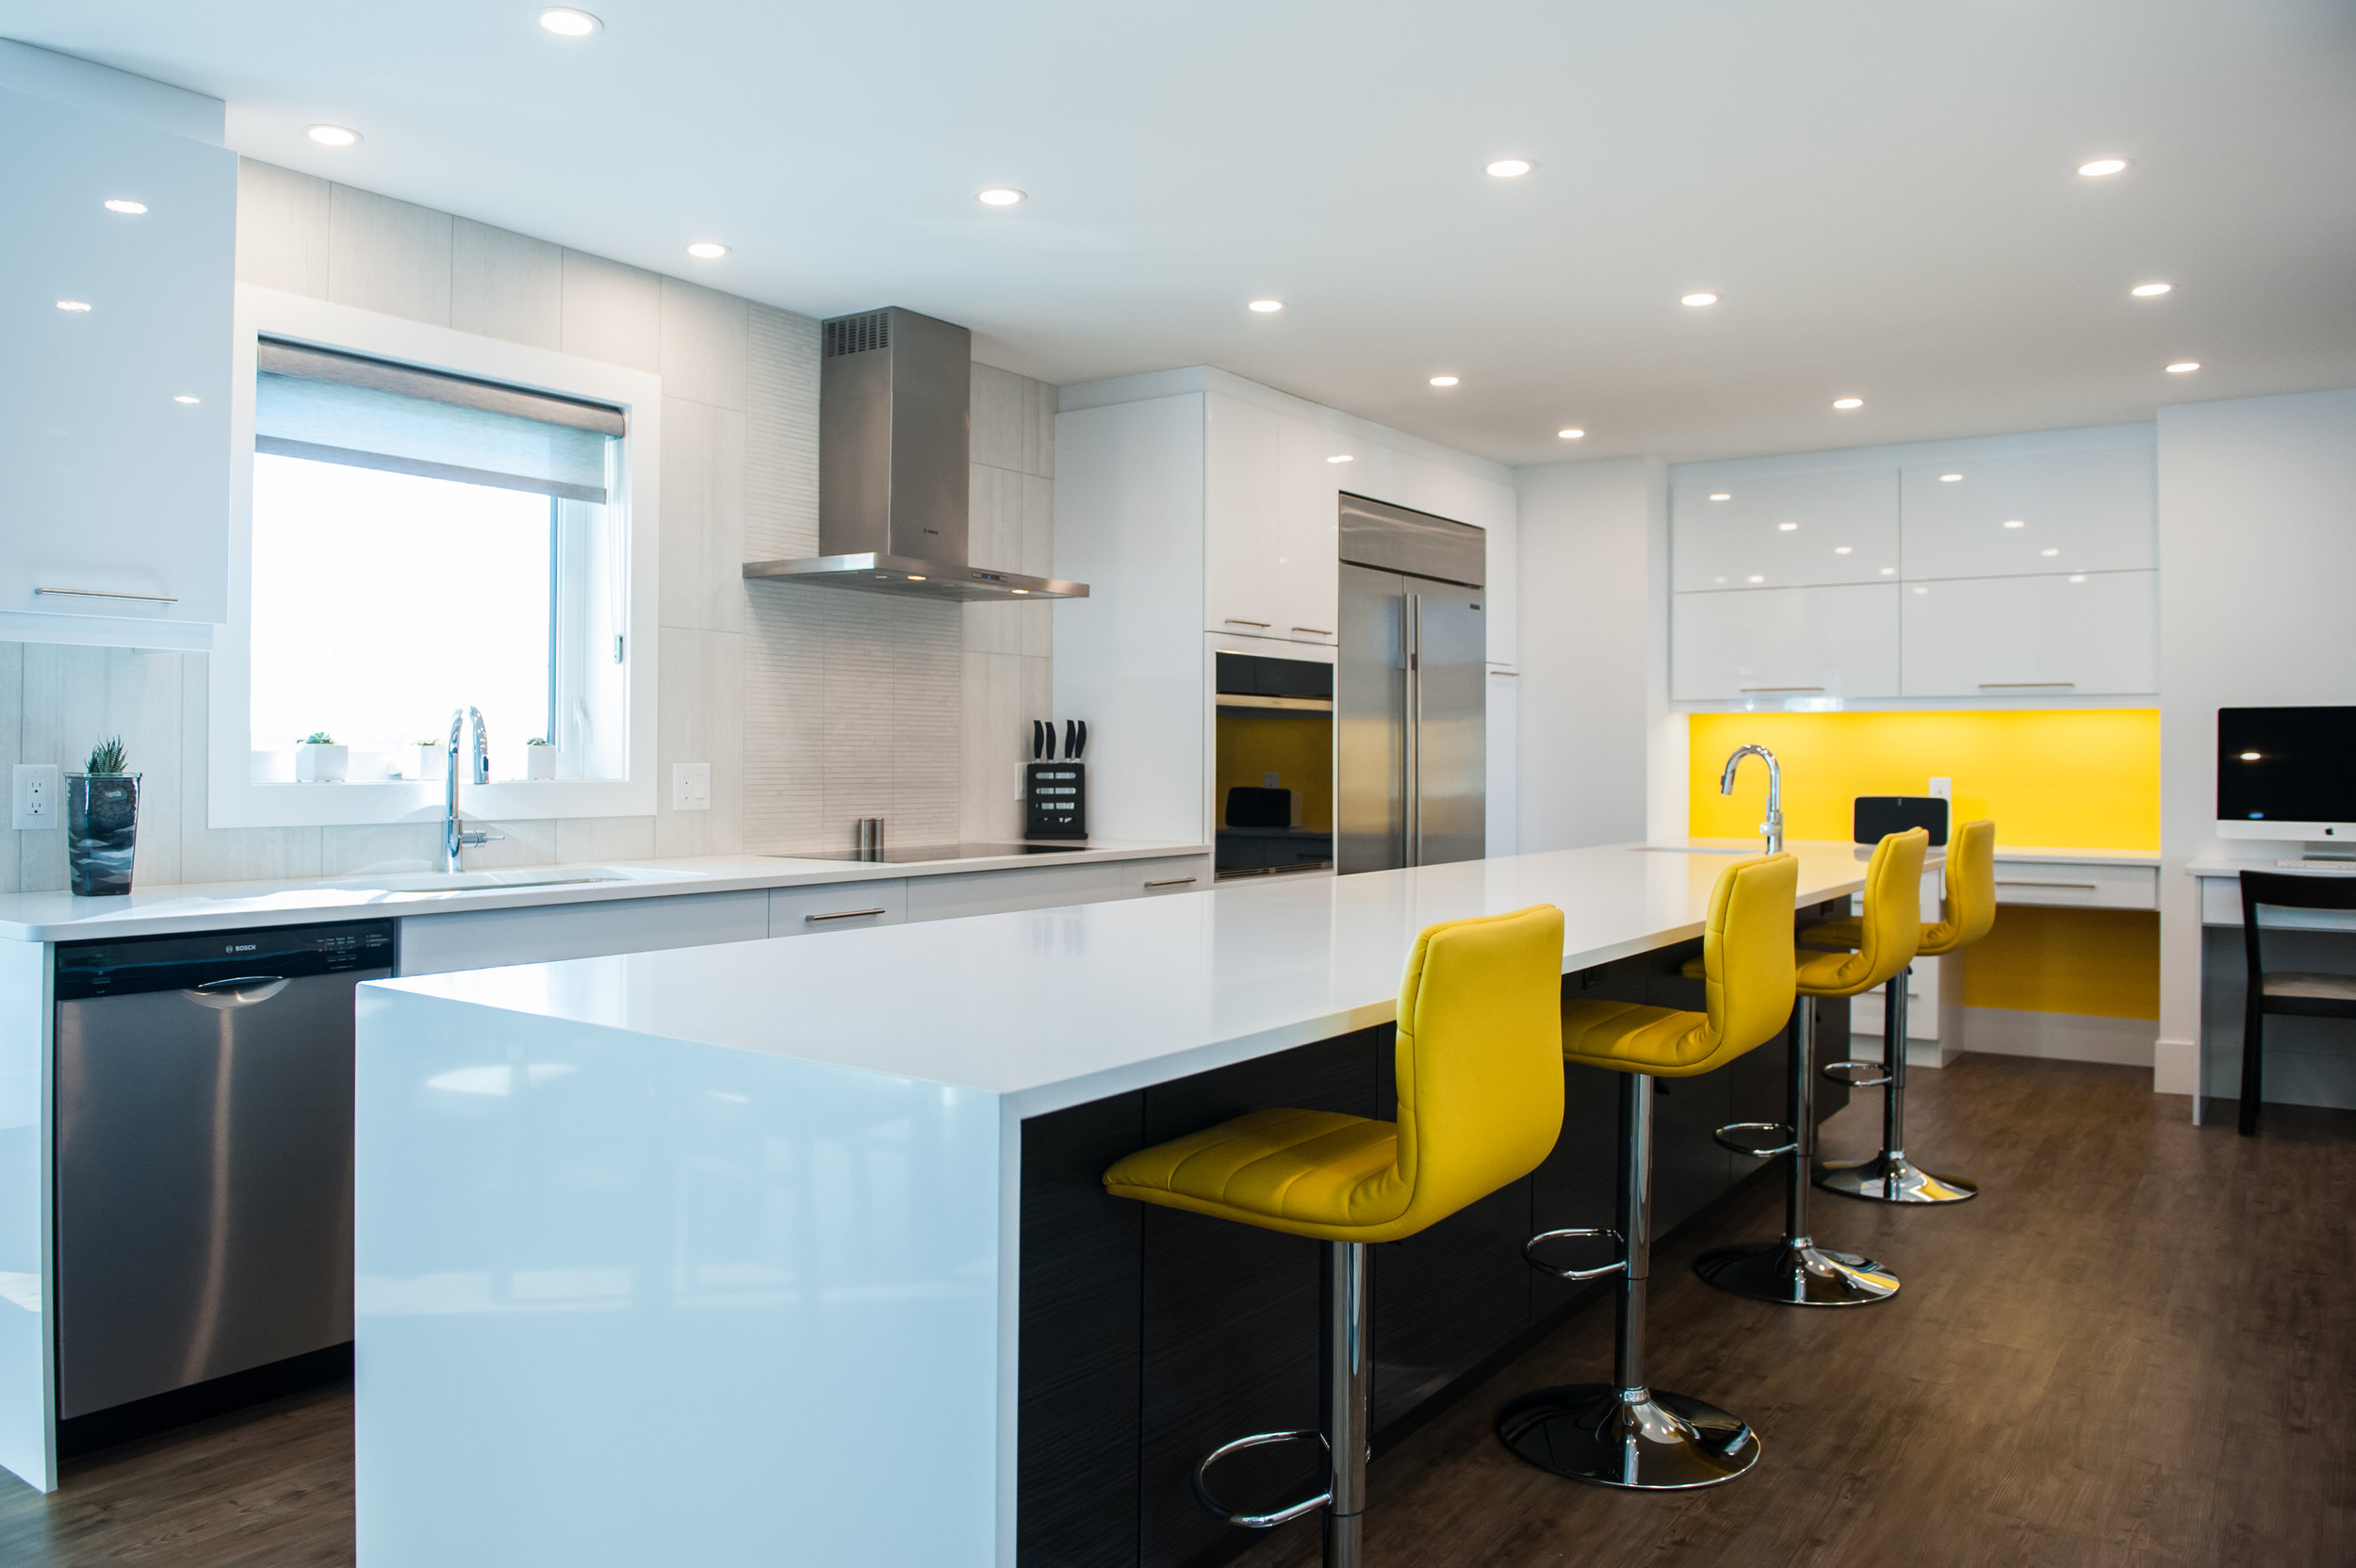 Kitchen Renovation Edmonton Alberta